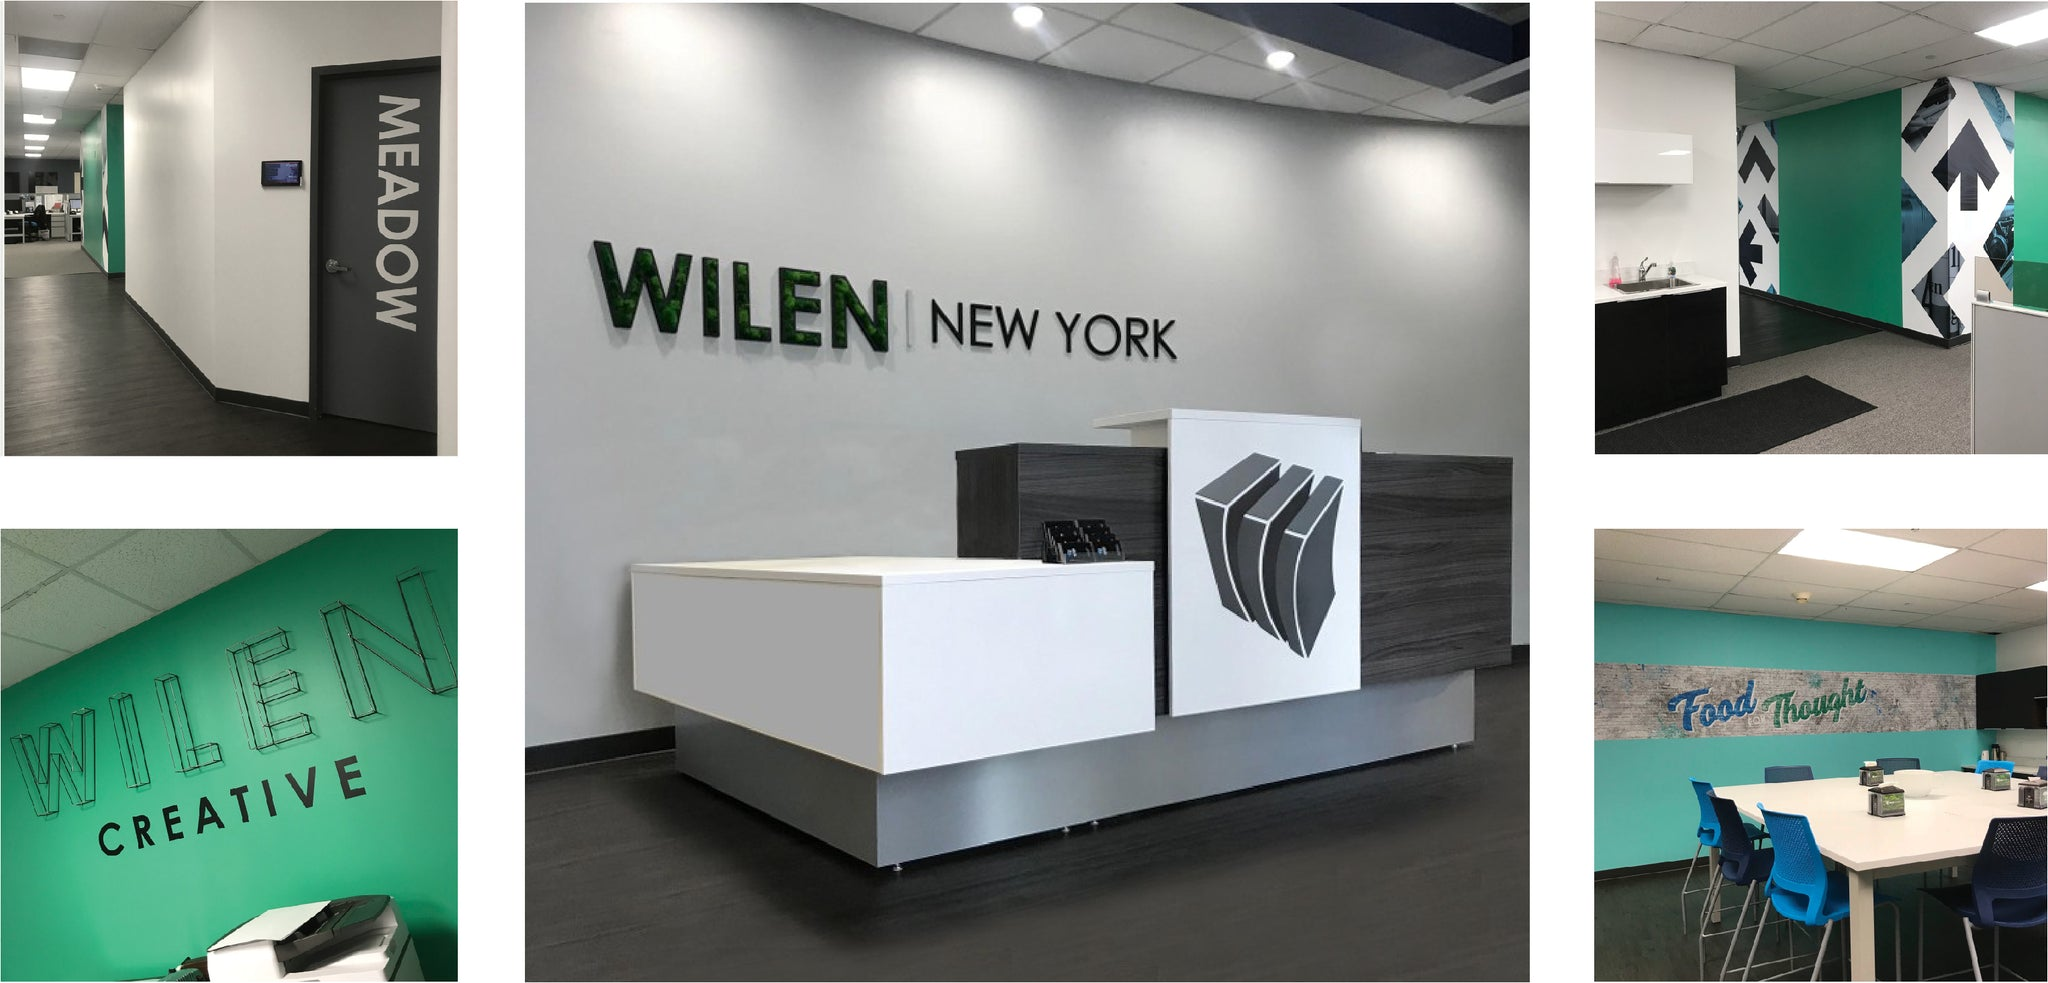 wilen new york in long island ny nassau county advertising marketing group interior design with wallcovering branding flooring lighting logo design reception desk cafeteria design  by id unique solutions inspire design creative studio